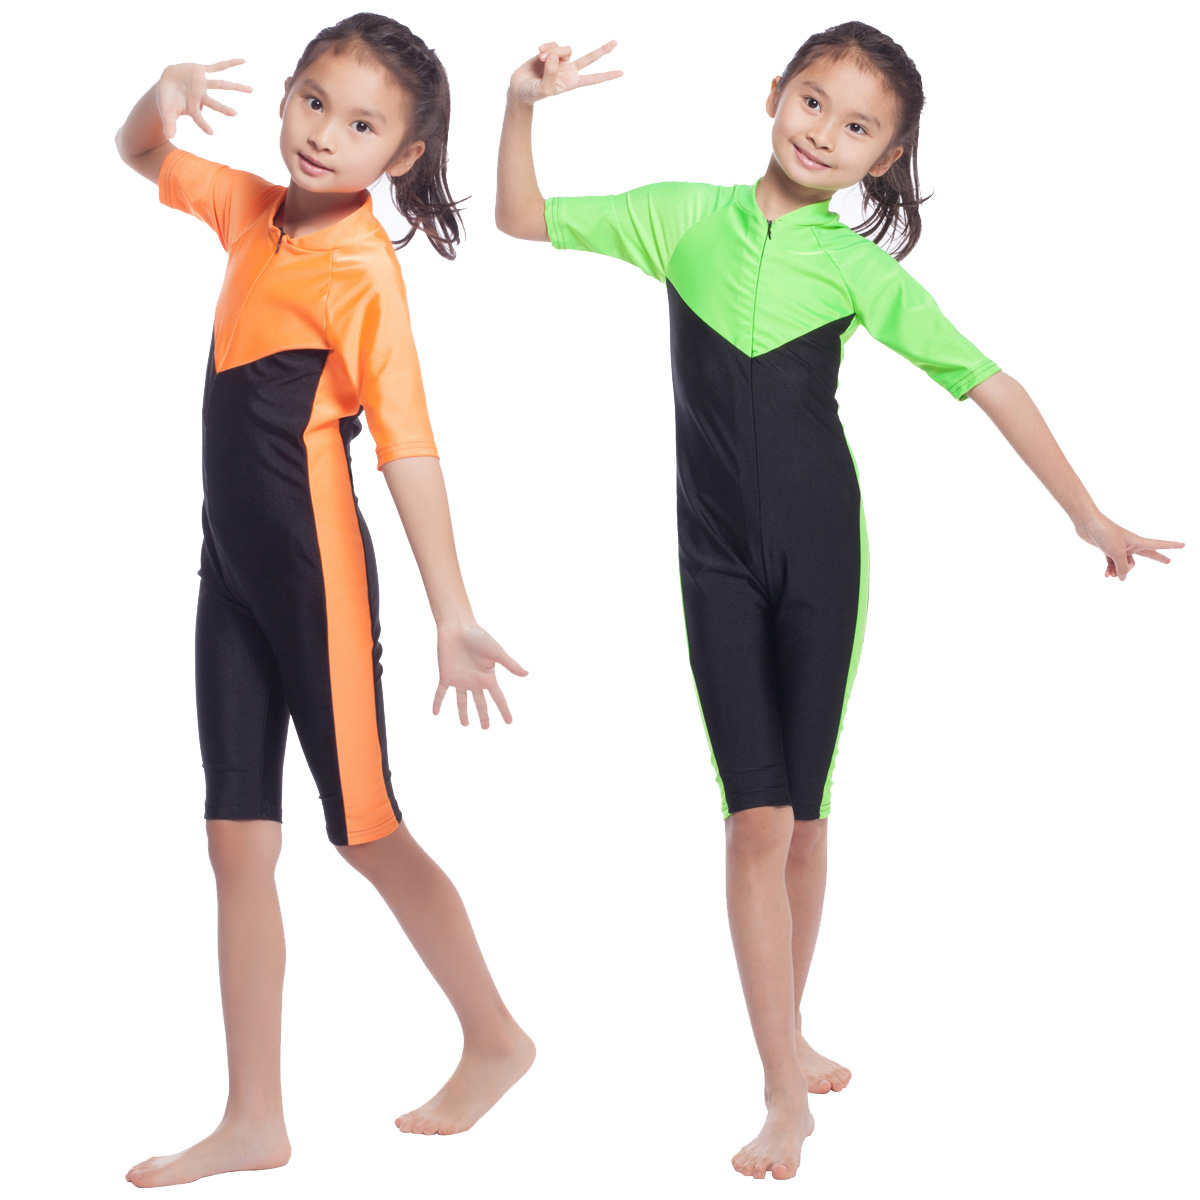 Muslim Hui Nationality GIRL'S Swimsuit Conservative Siamese Swimsuit, HW20B